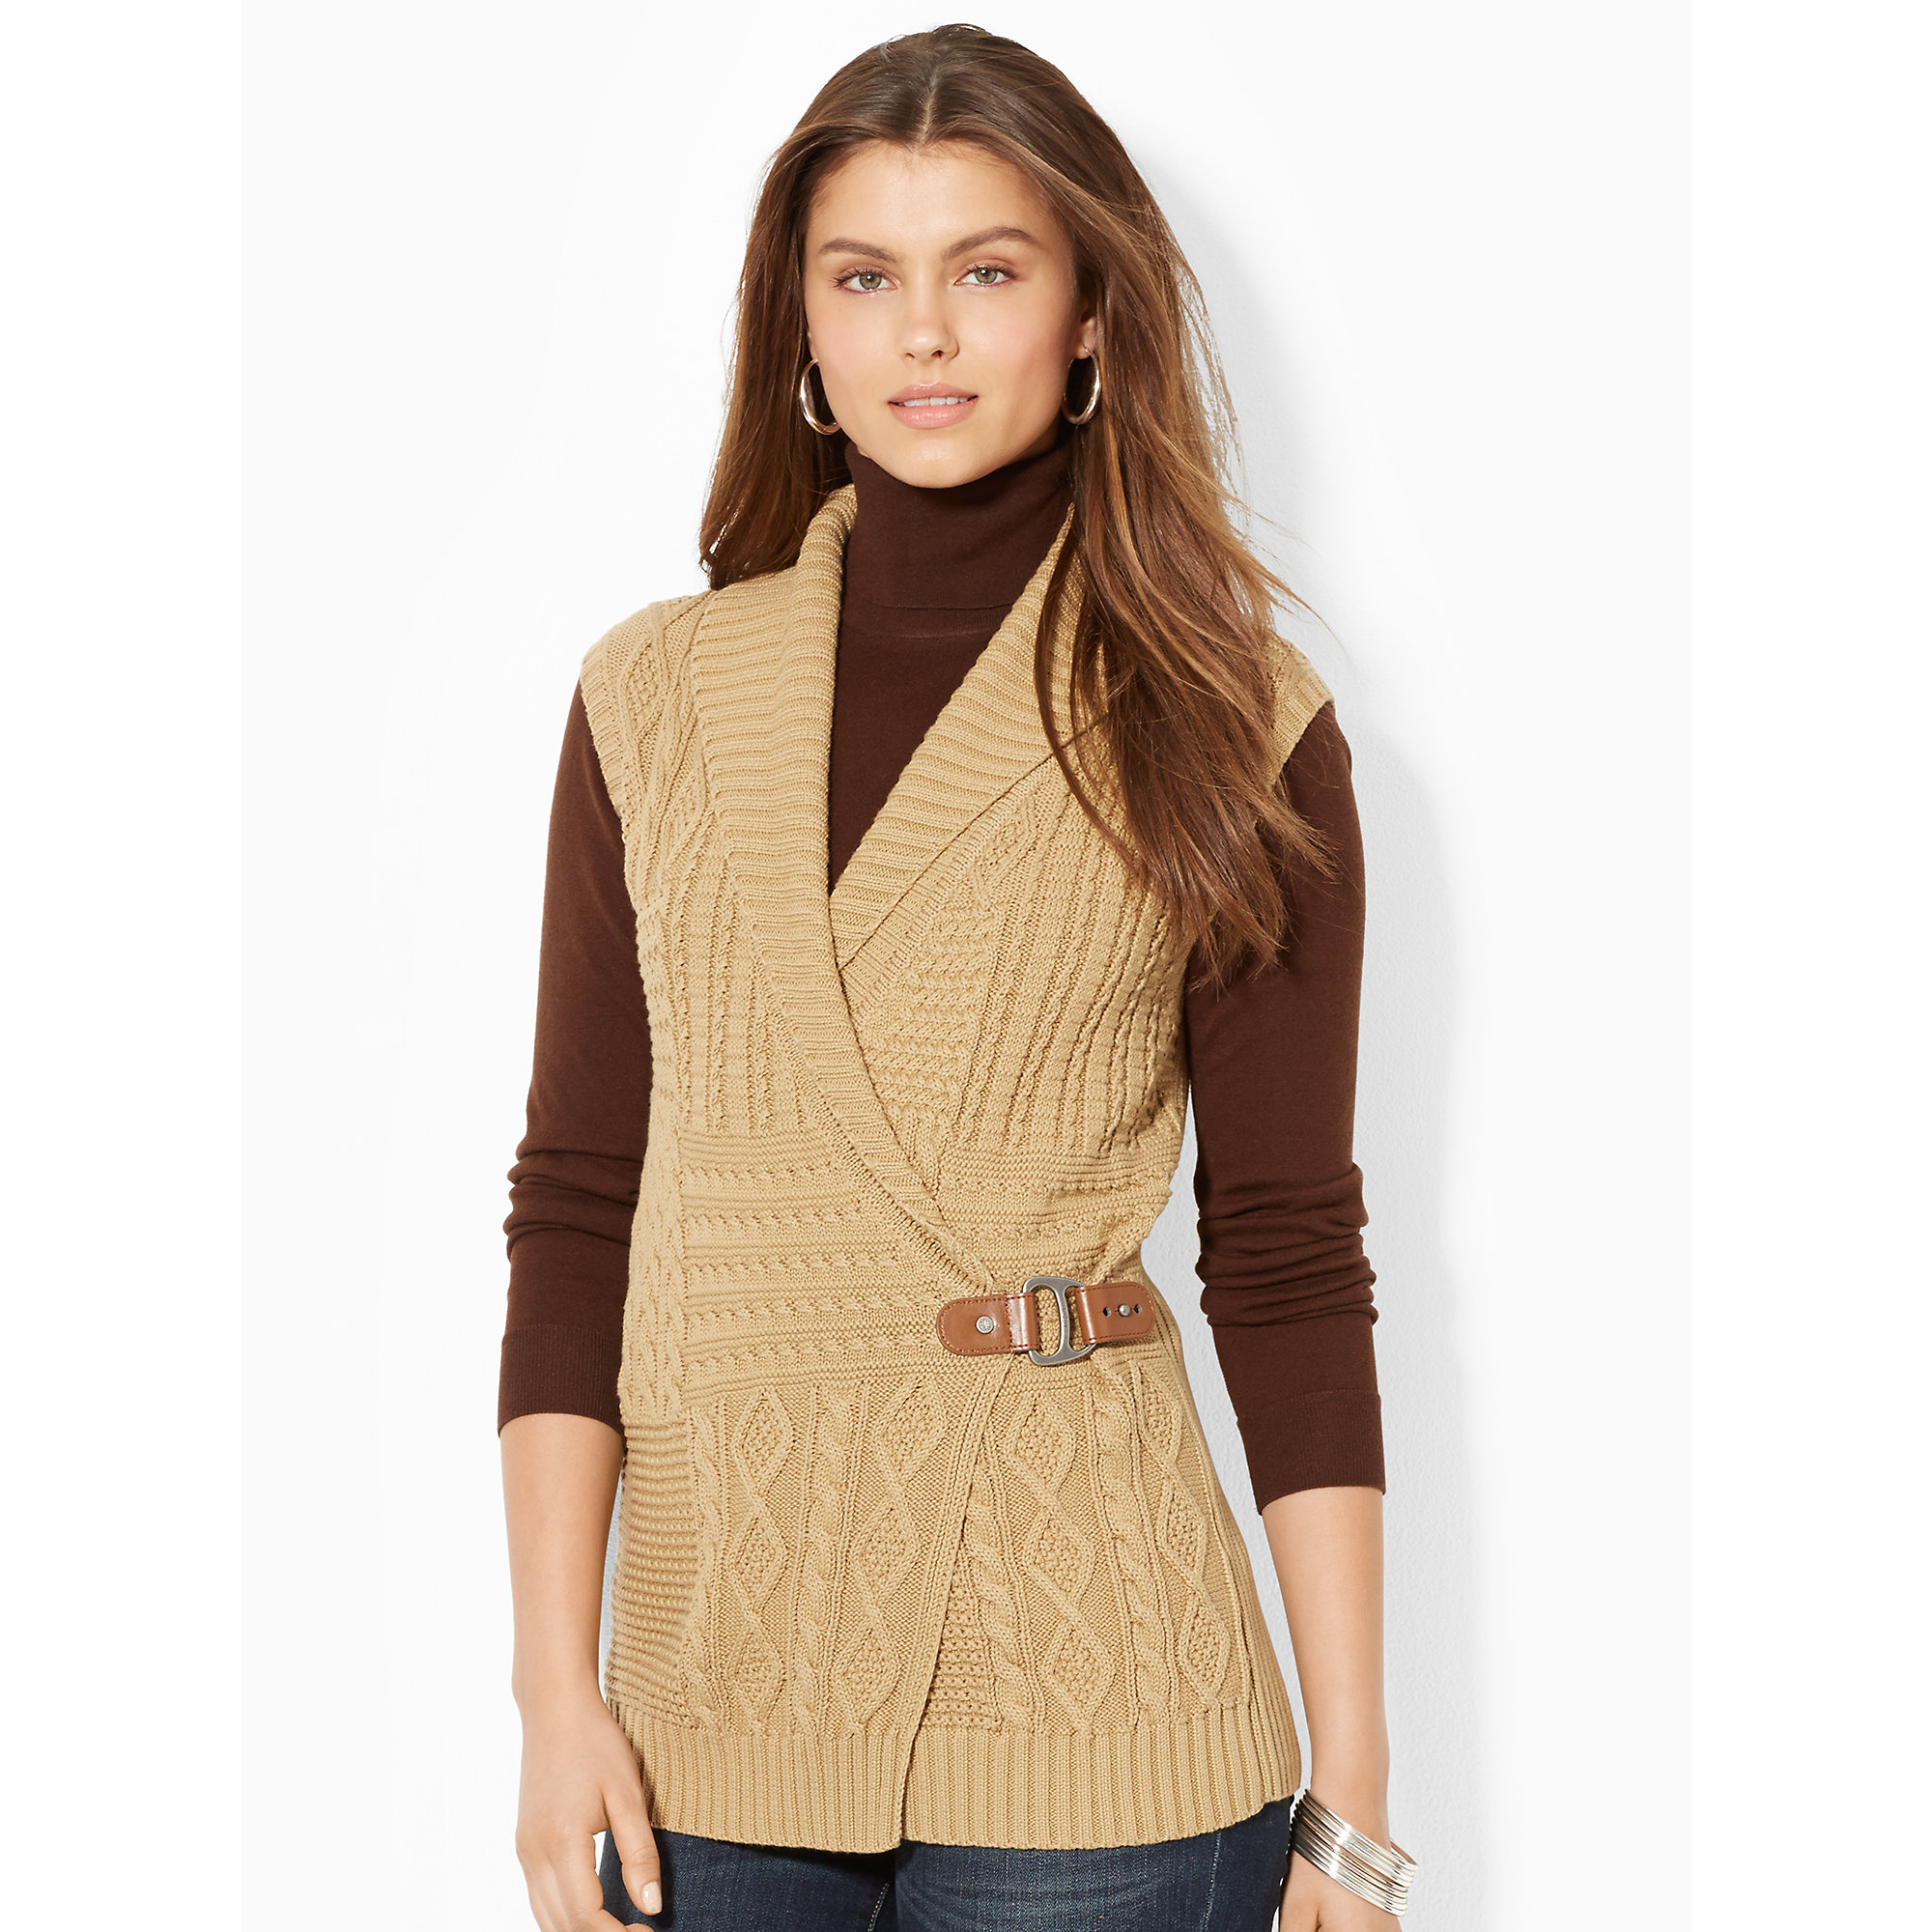 Ladies Shawl Sweater Cardigan Sweater Vest For Women Baggage Clothing